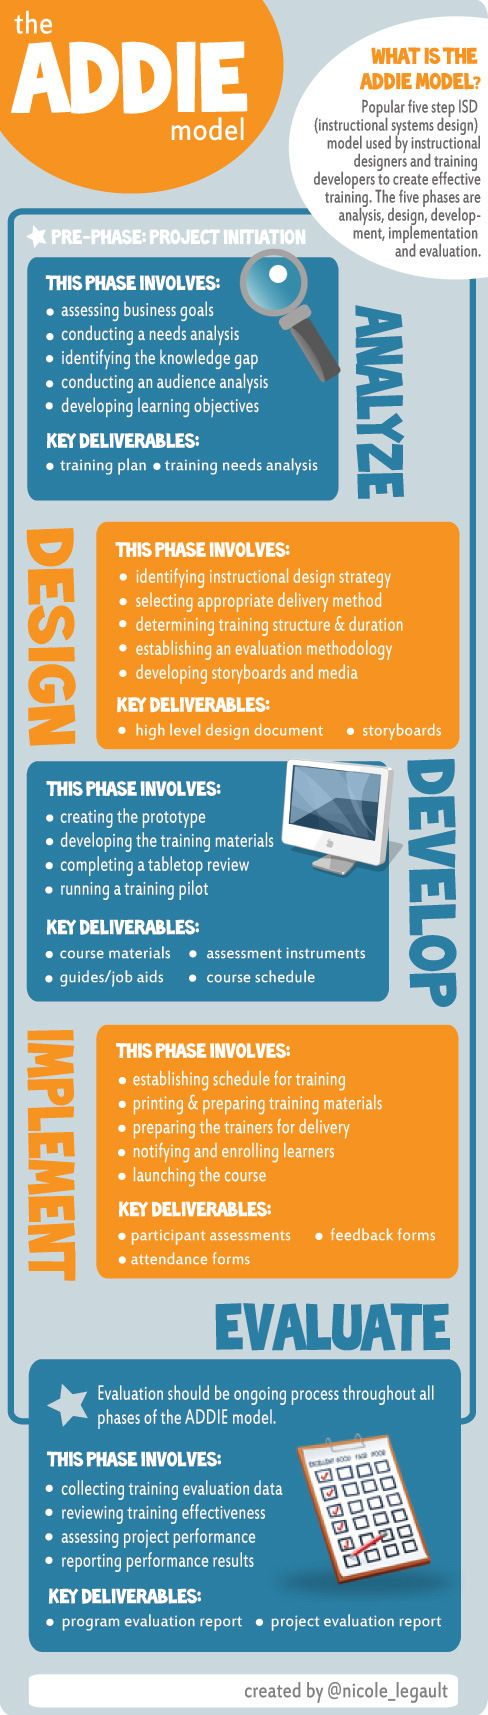 The ADDIE Instructional Design Model Infographic | e-Learning Infographics